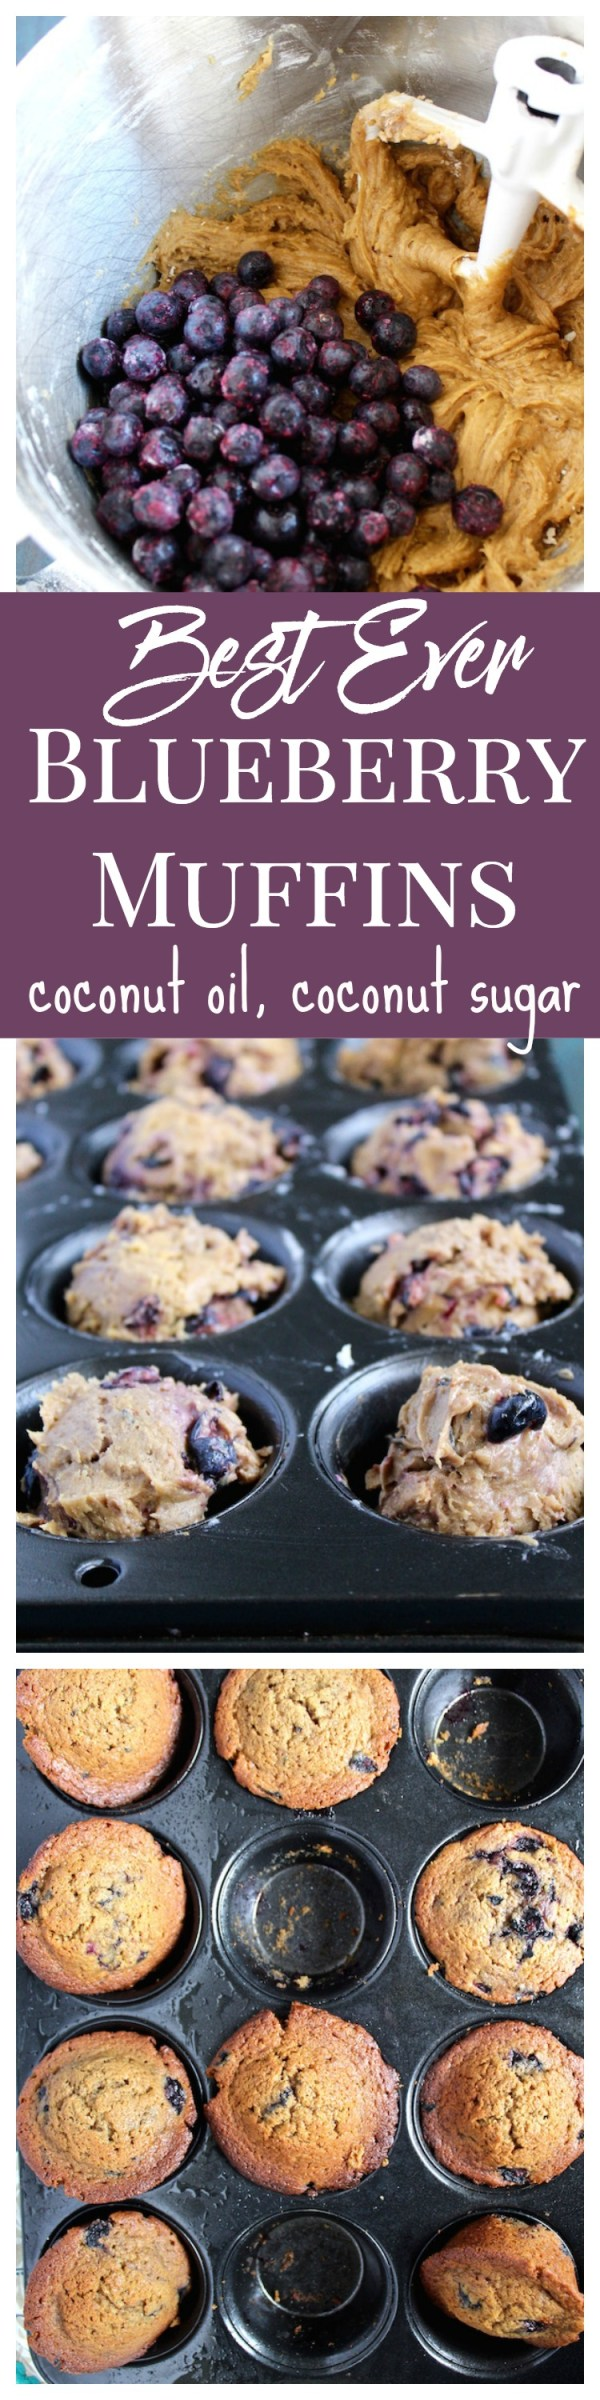 Best Ever Blueberry Muffins Pinterest